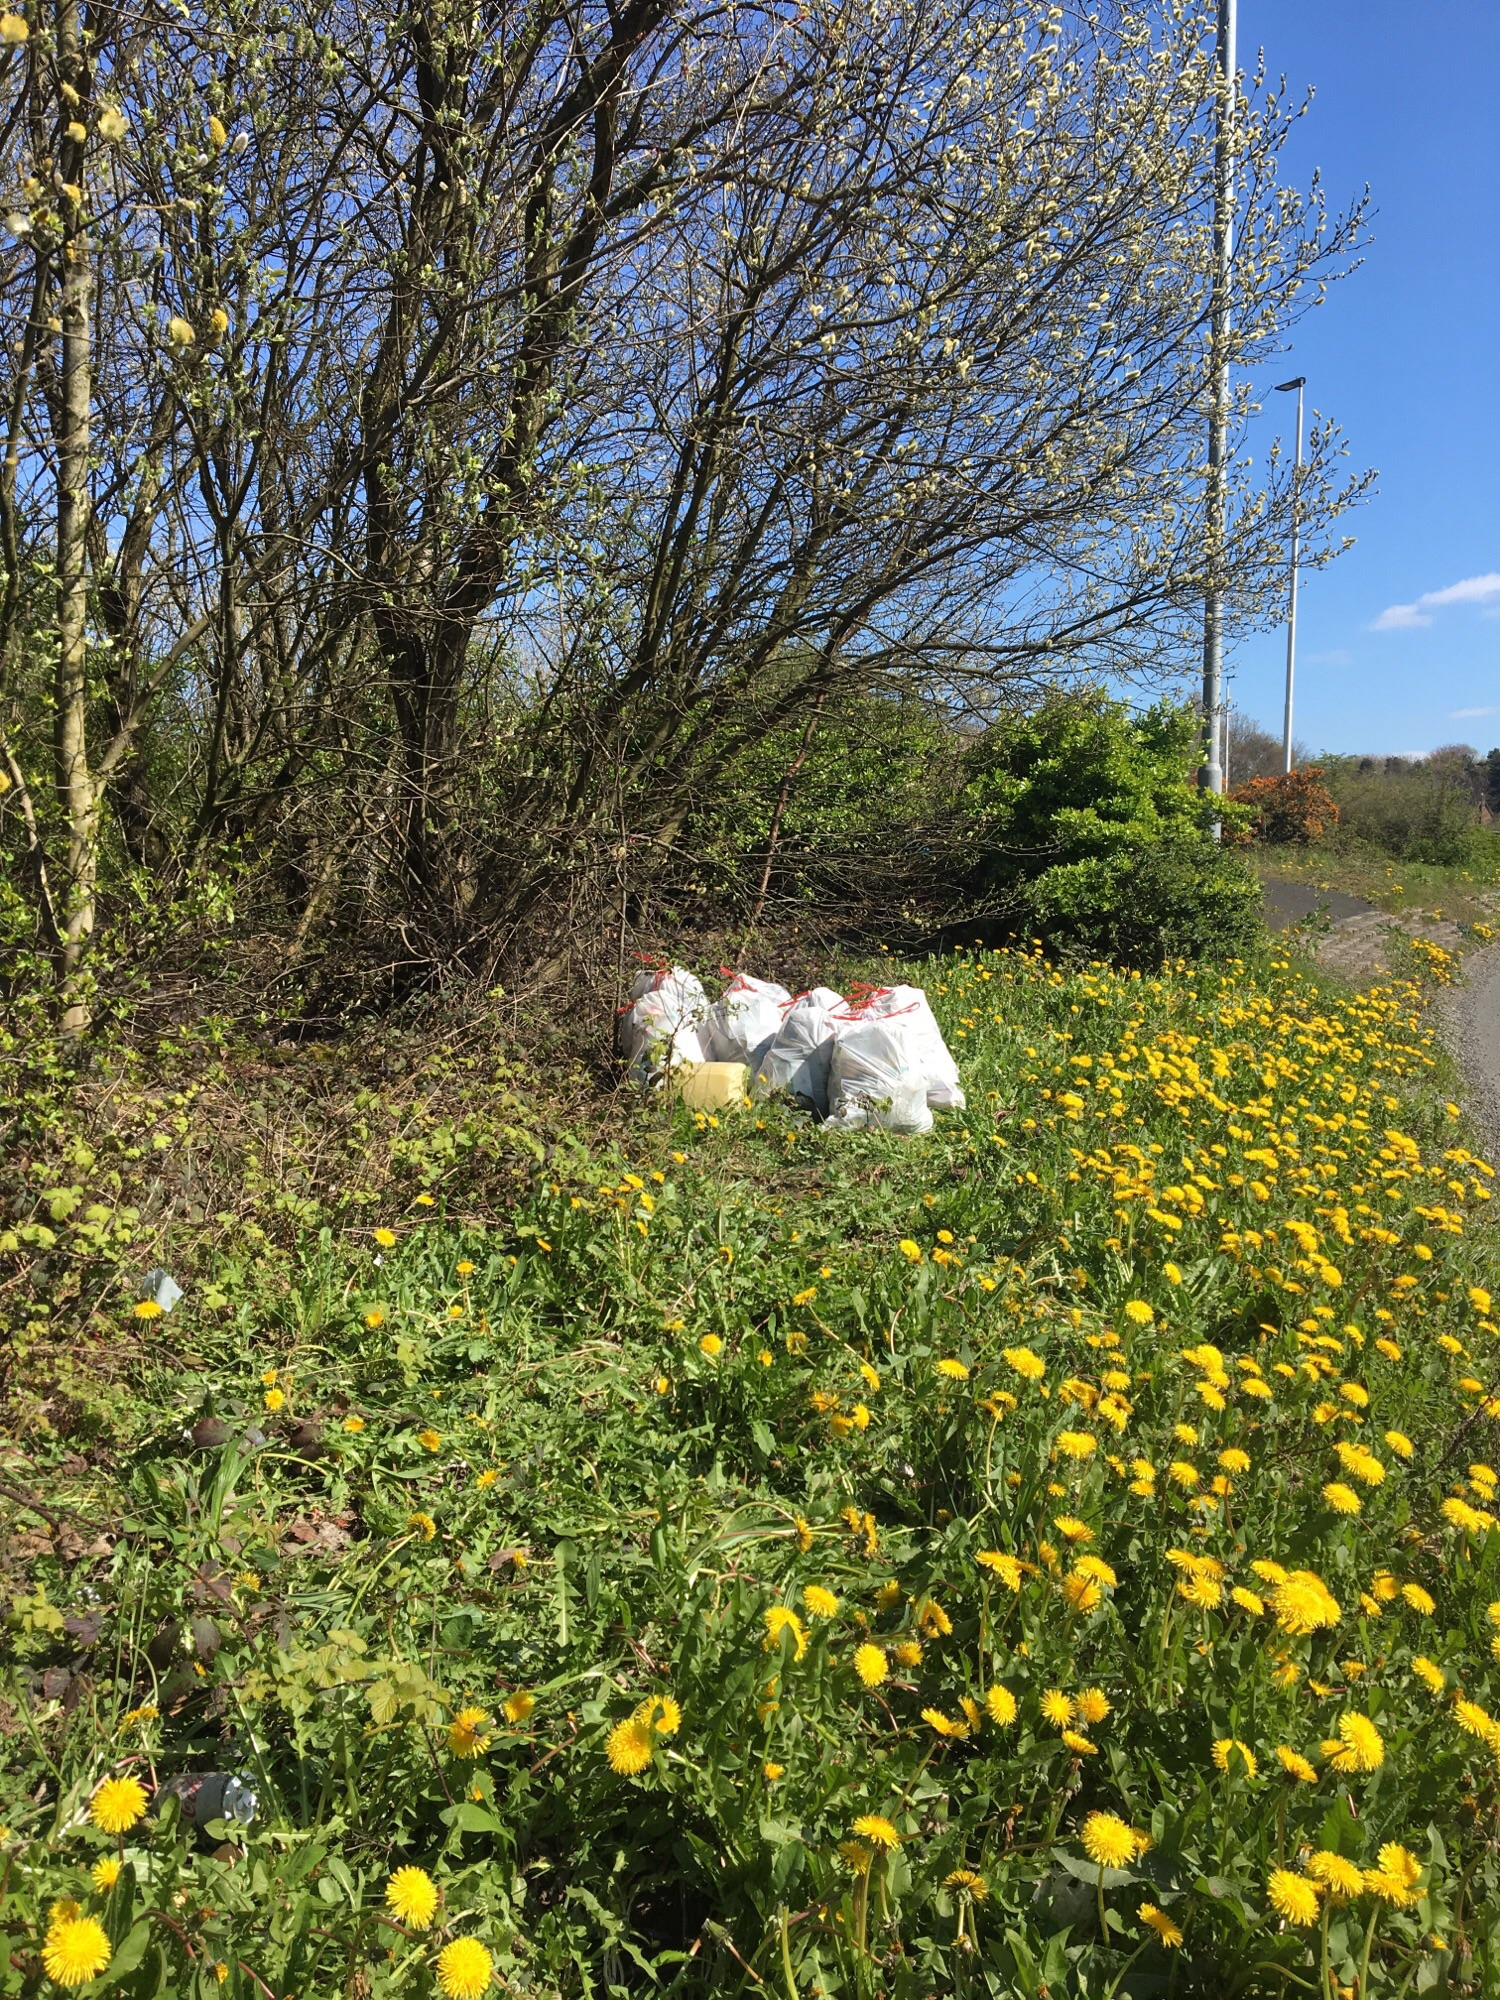 What a load of rubbish! Resident collects nine bin bags of discarded items after council refutes litter claims